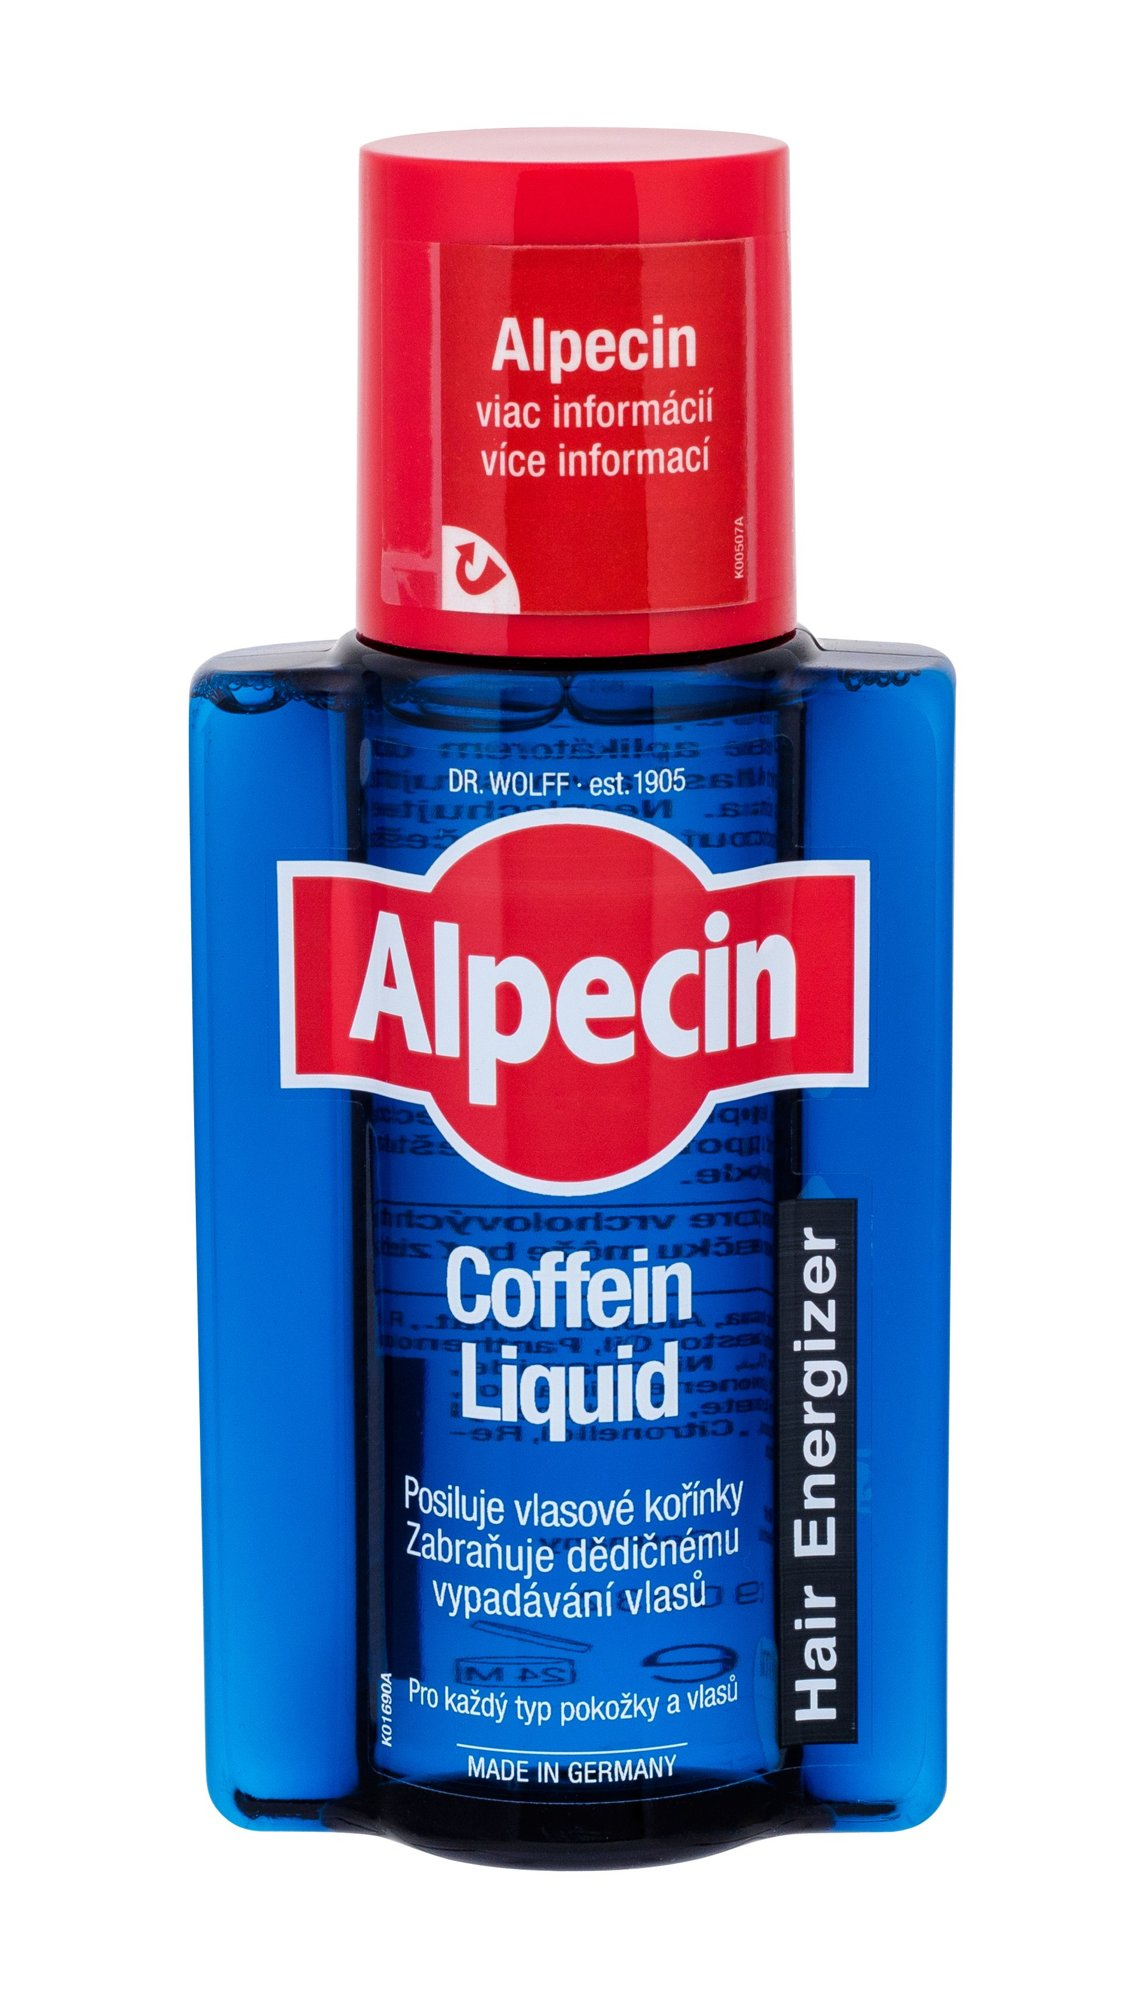 Alpecin Caffeine Liquid Cosmetic 200ml